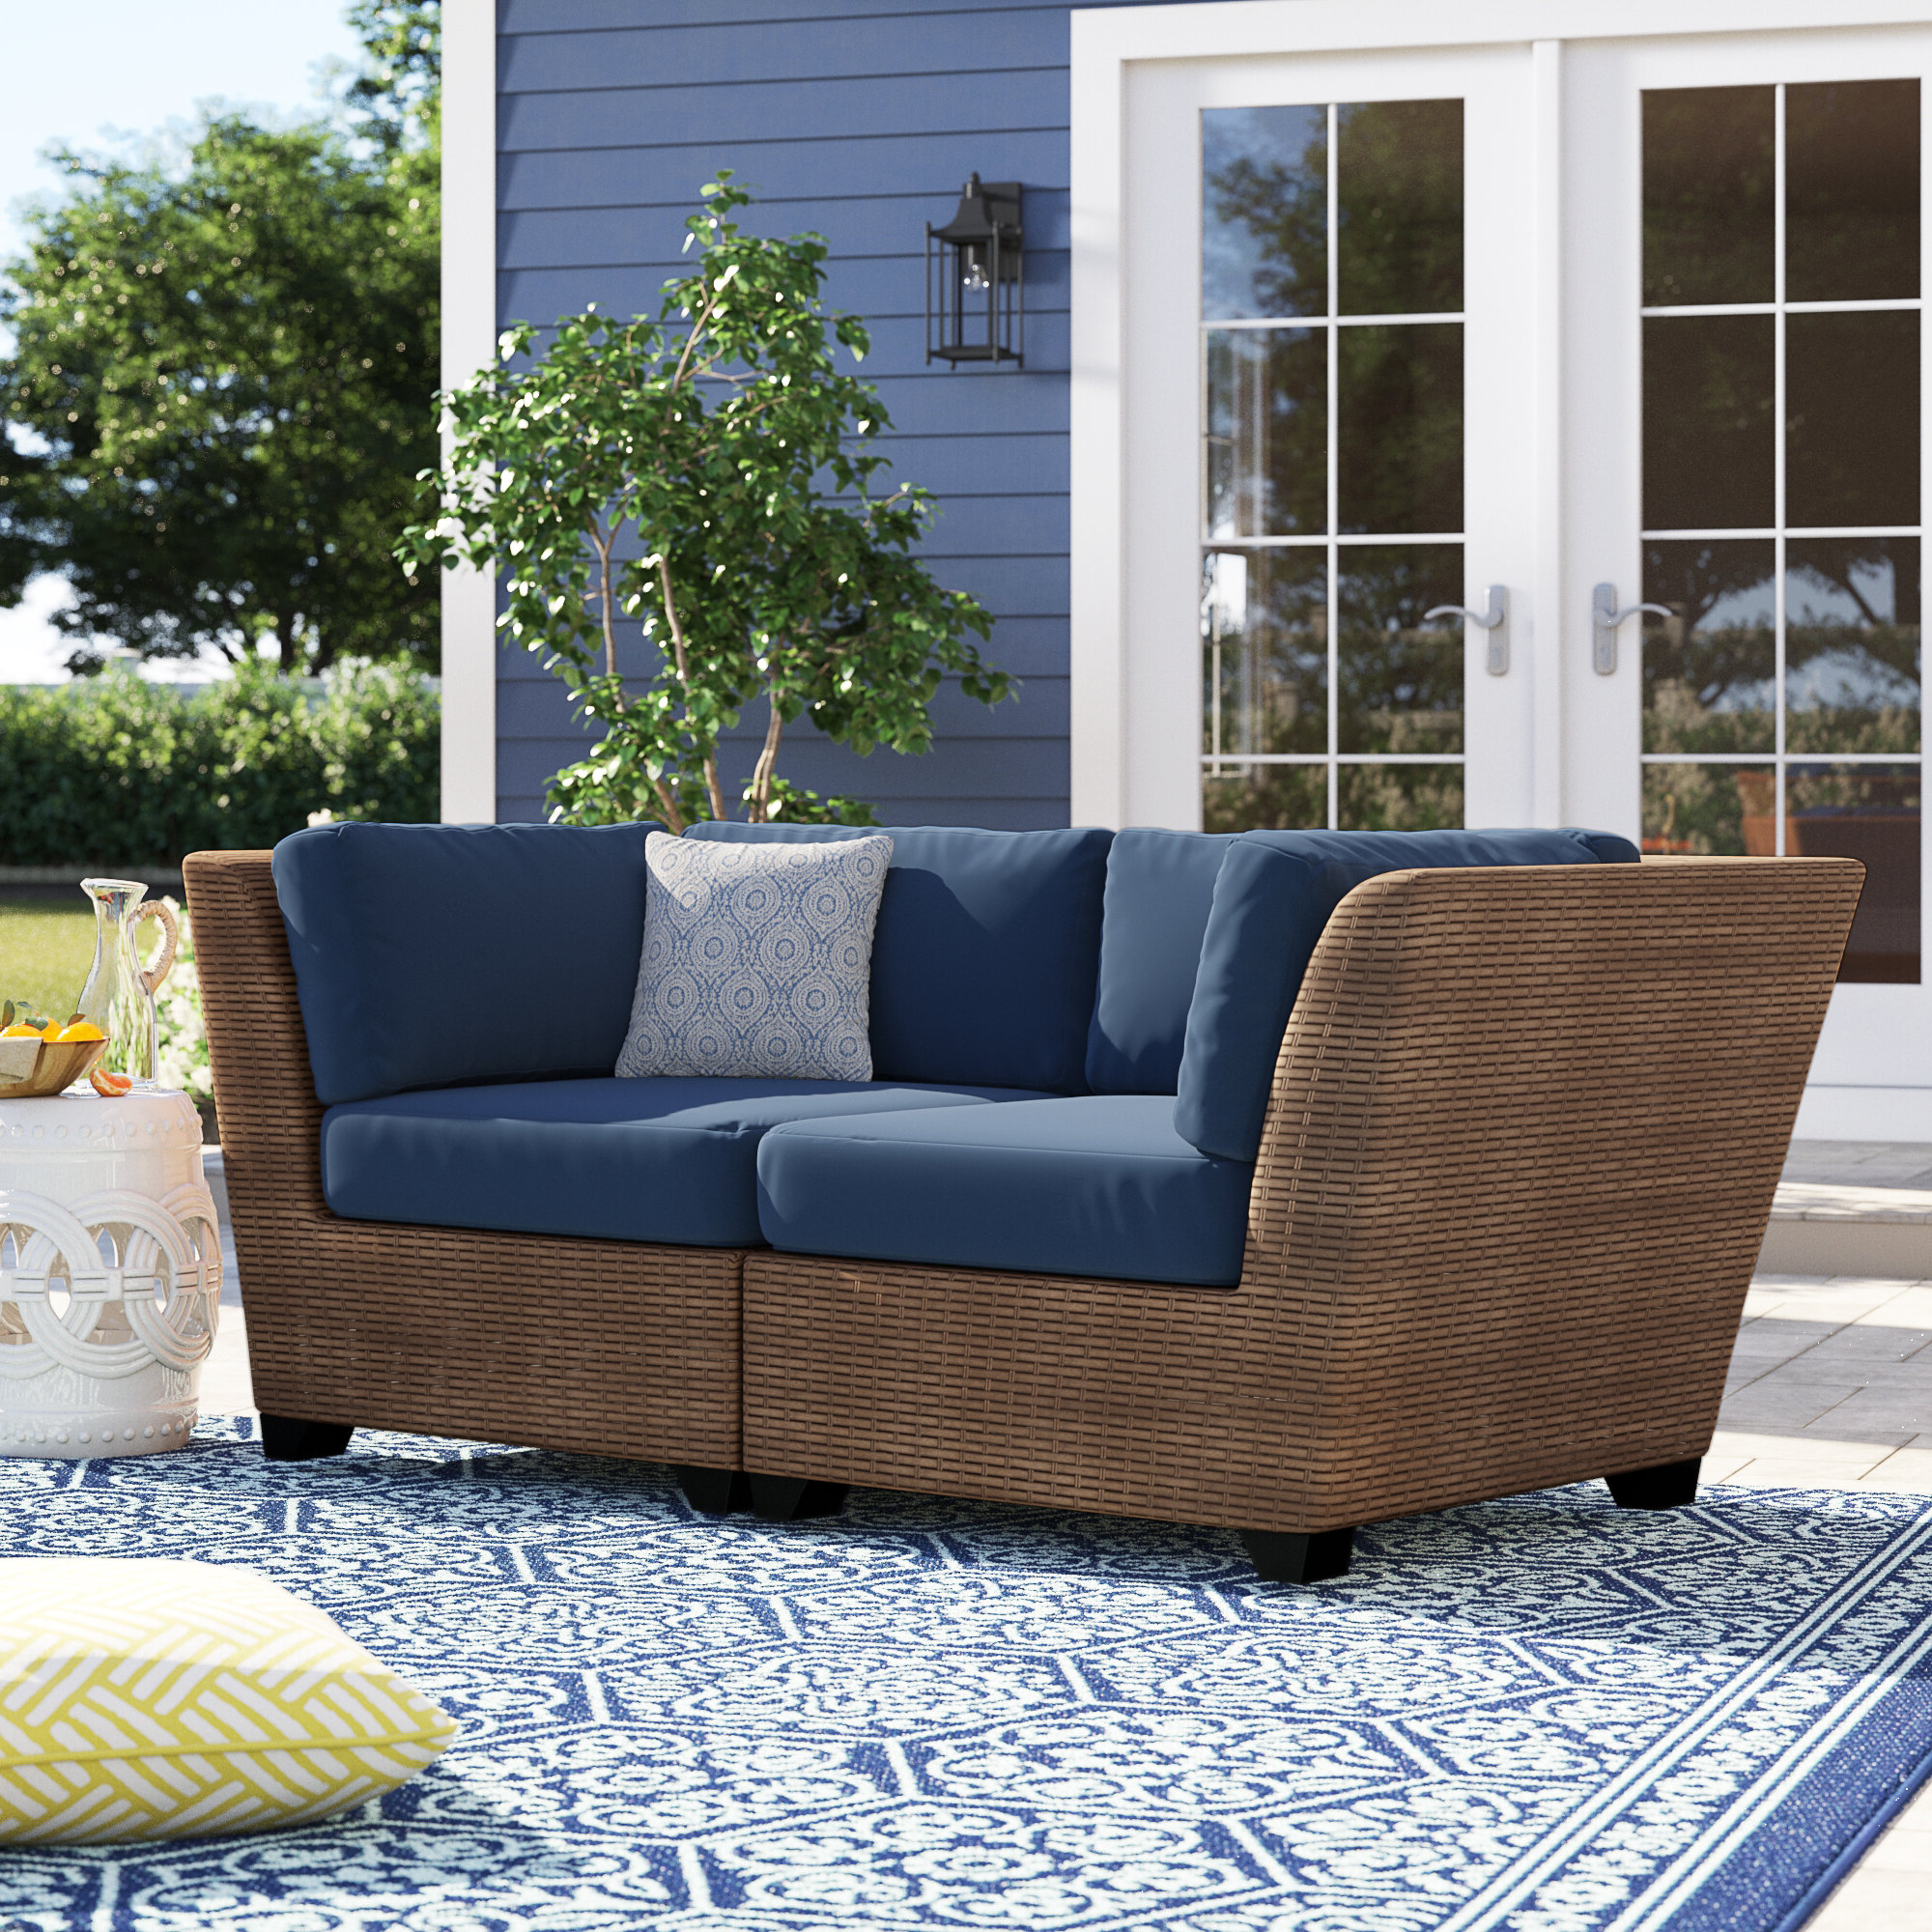 Waterbury Corner Sofa With Cushions For Best And Newest Wrobel Patio Sectionals With Cushion (View 10 of 20)